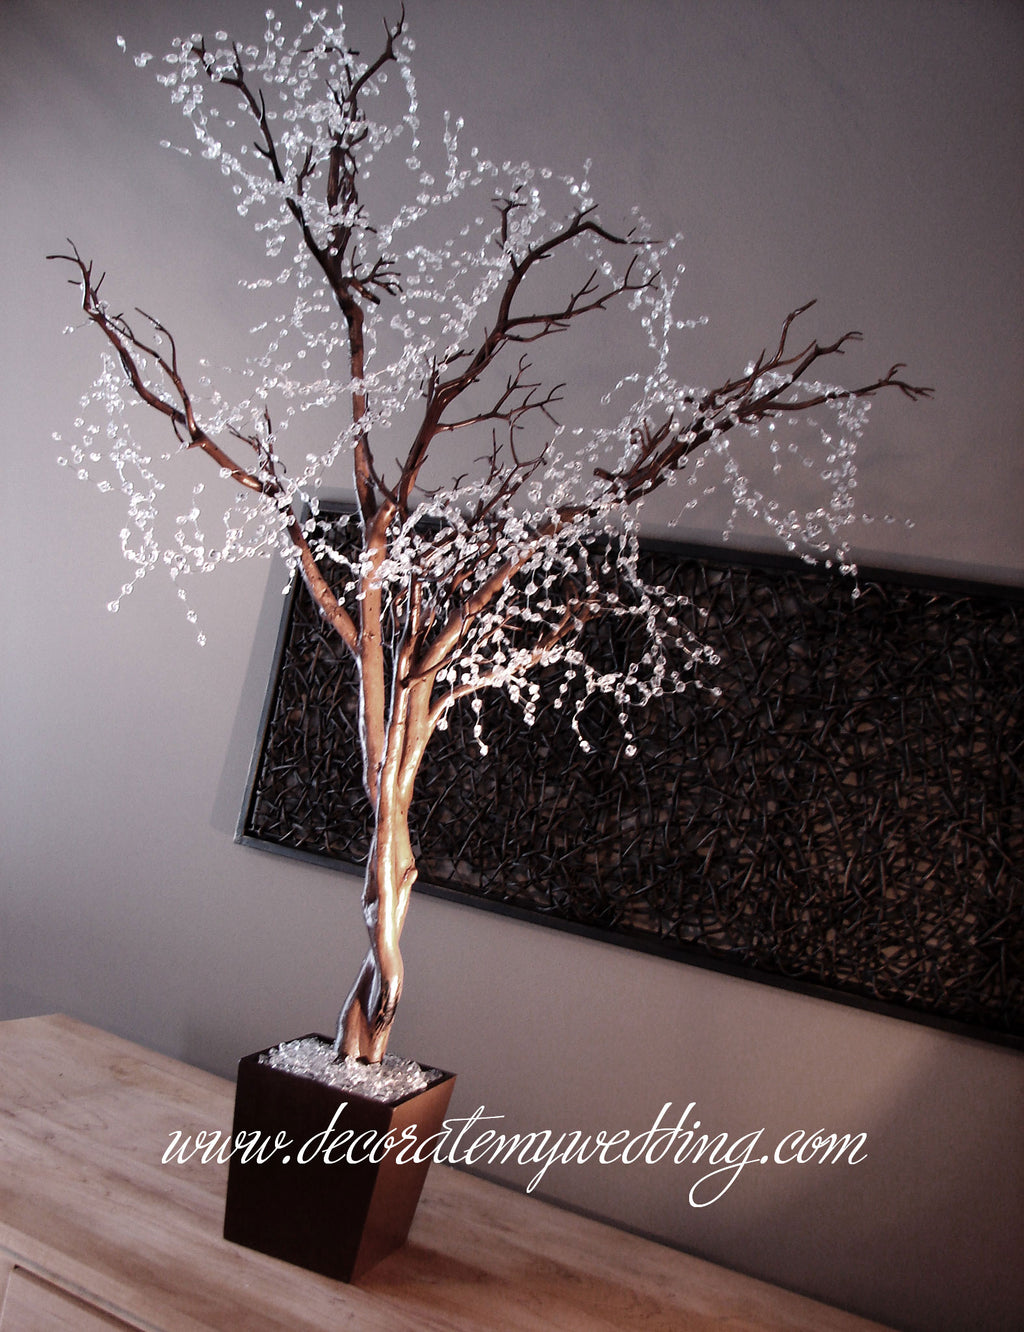 Artificial tree with a crystal beaded garland creates a frosty look.